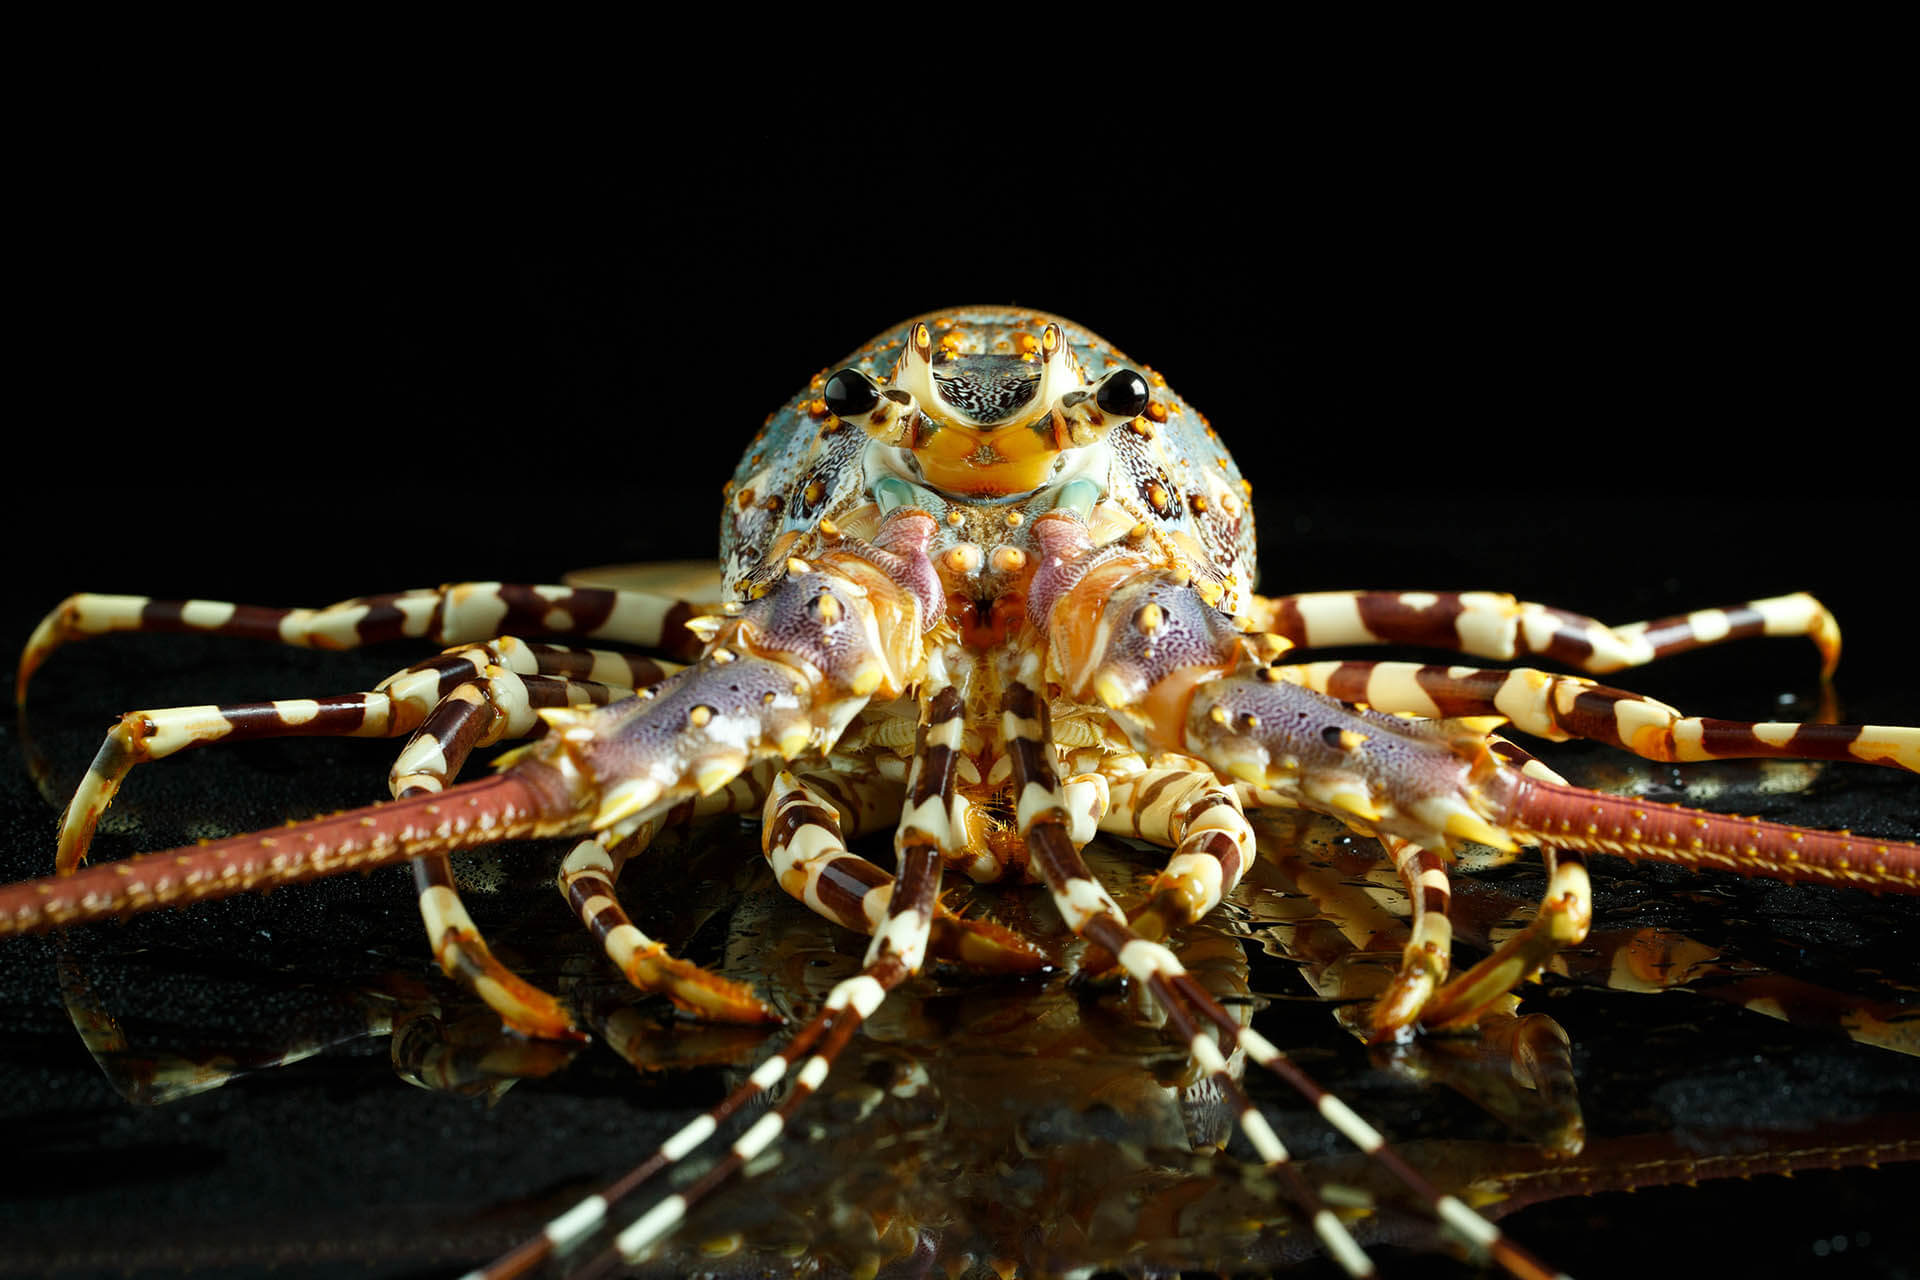 Adult Spiny Lobster